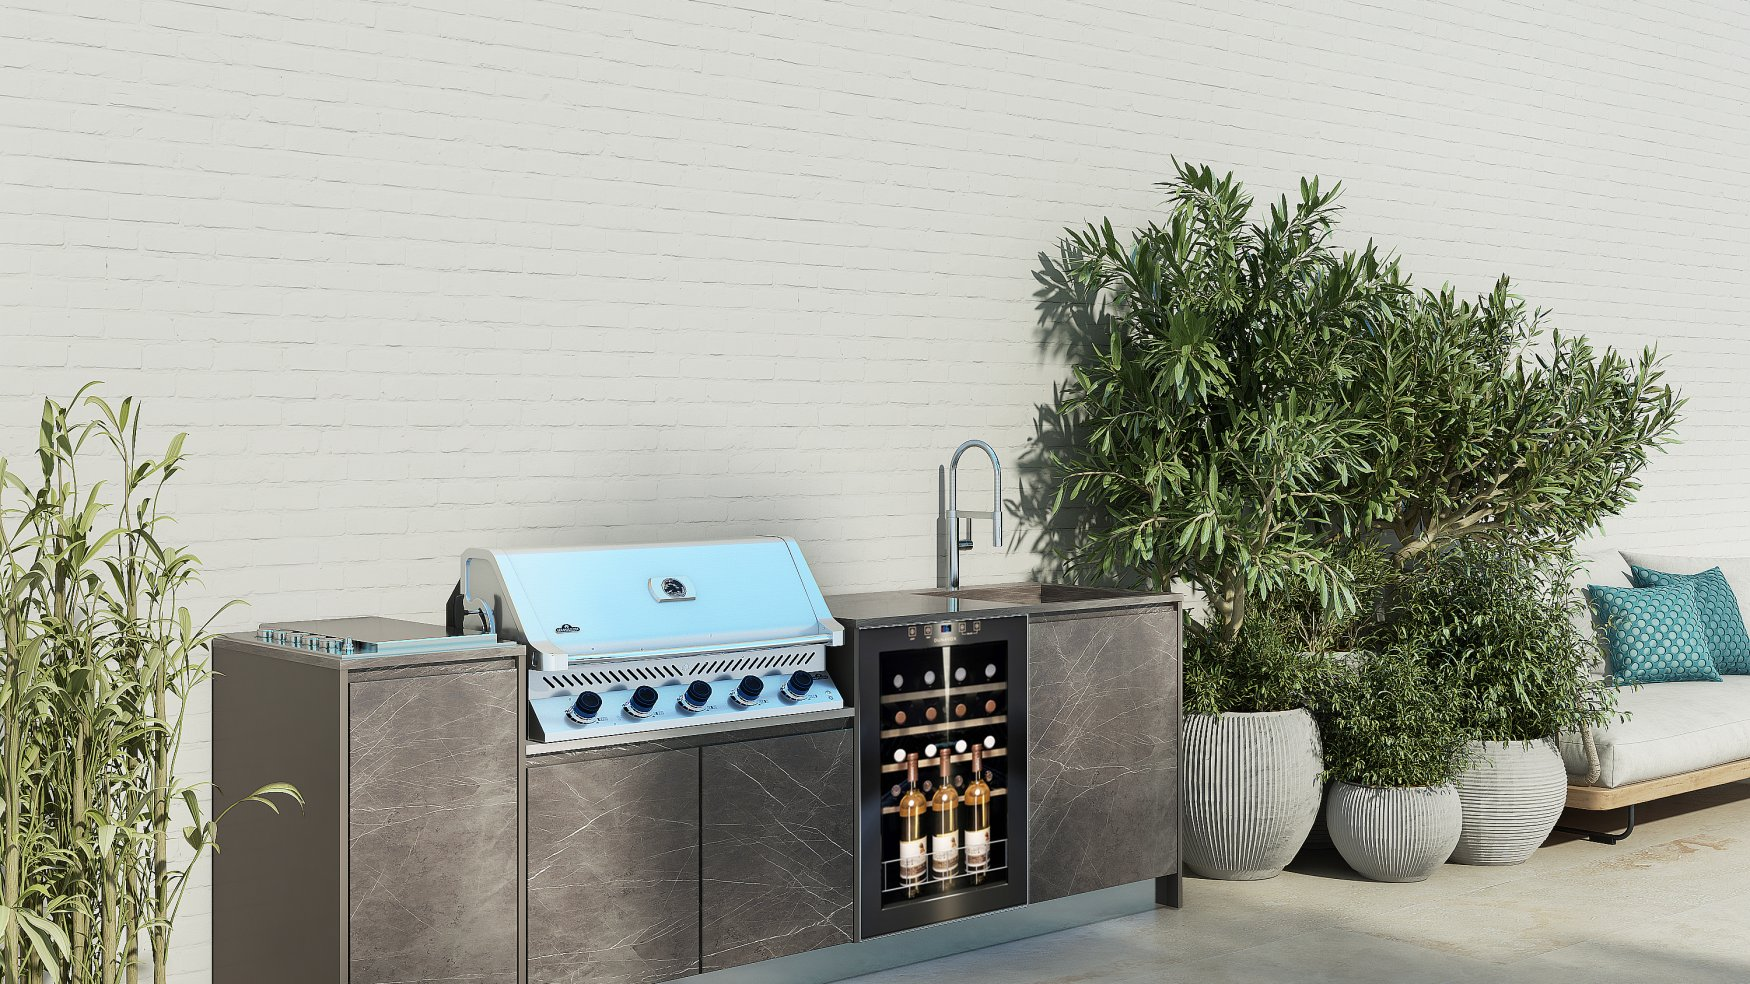 KITCHEN_GRILL_93_poster1